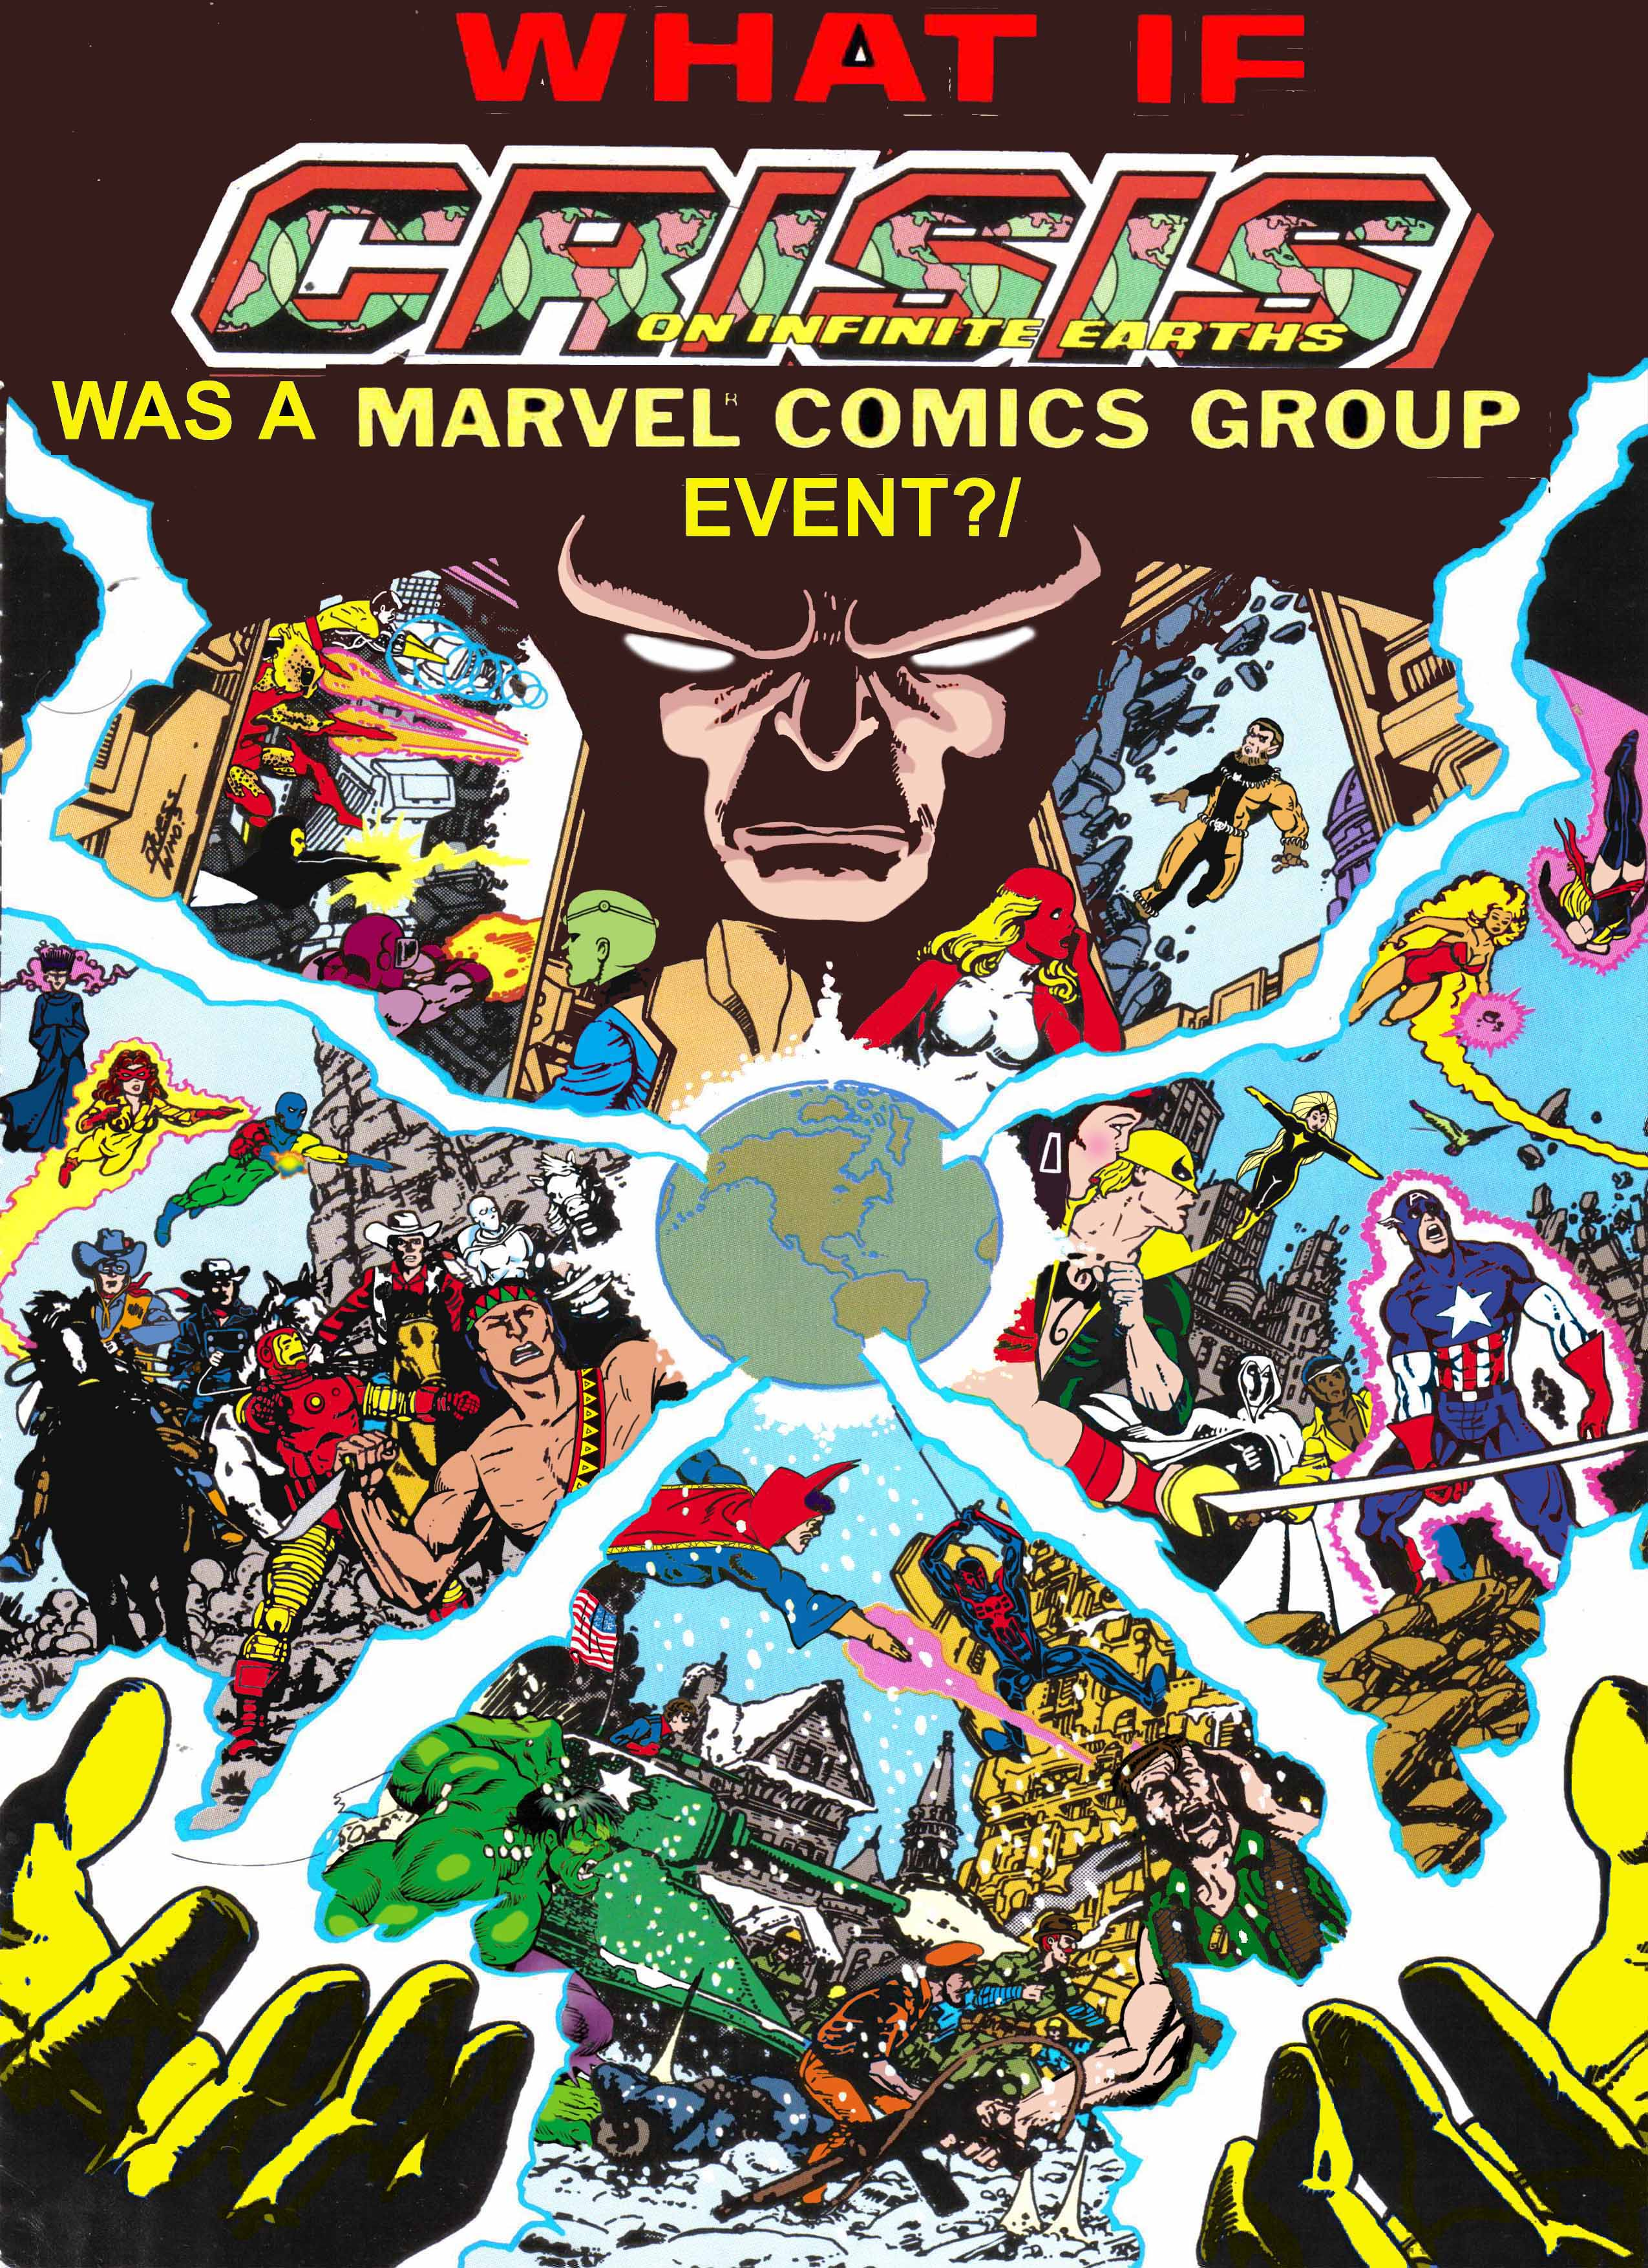 What If Crisis on Infinite Earths was a Marvel Comics Group Event Book 3 cover